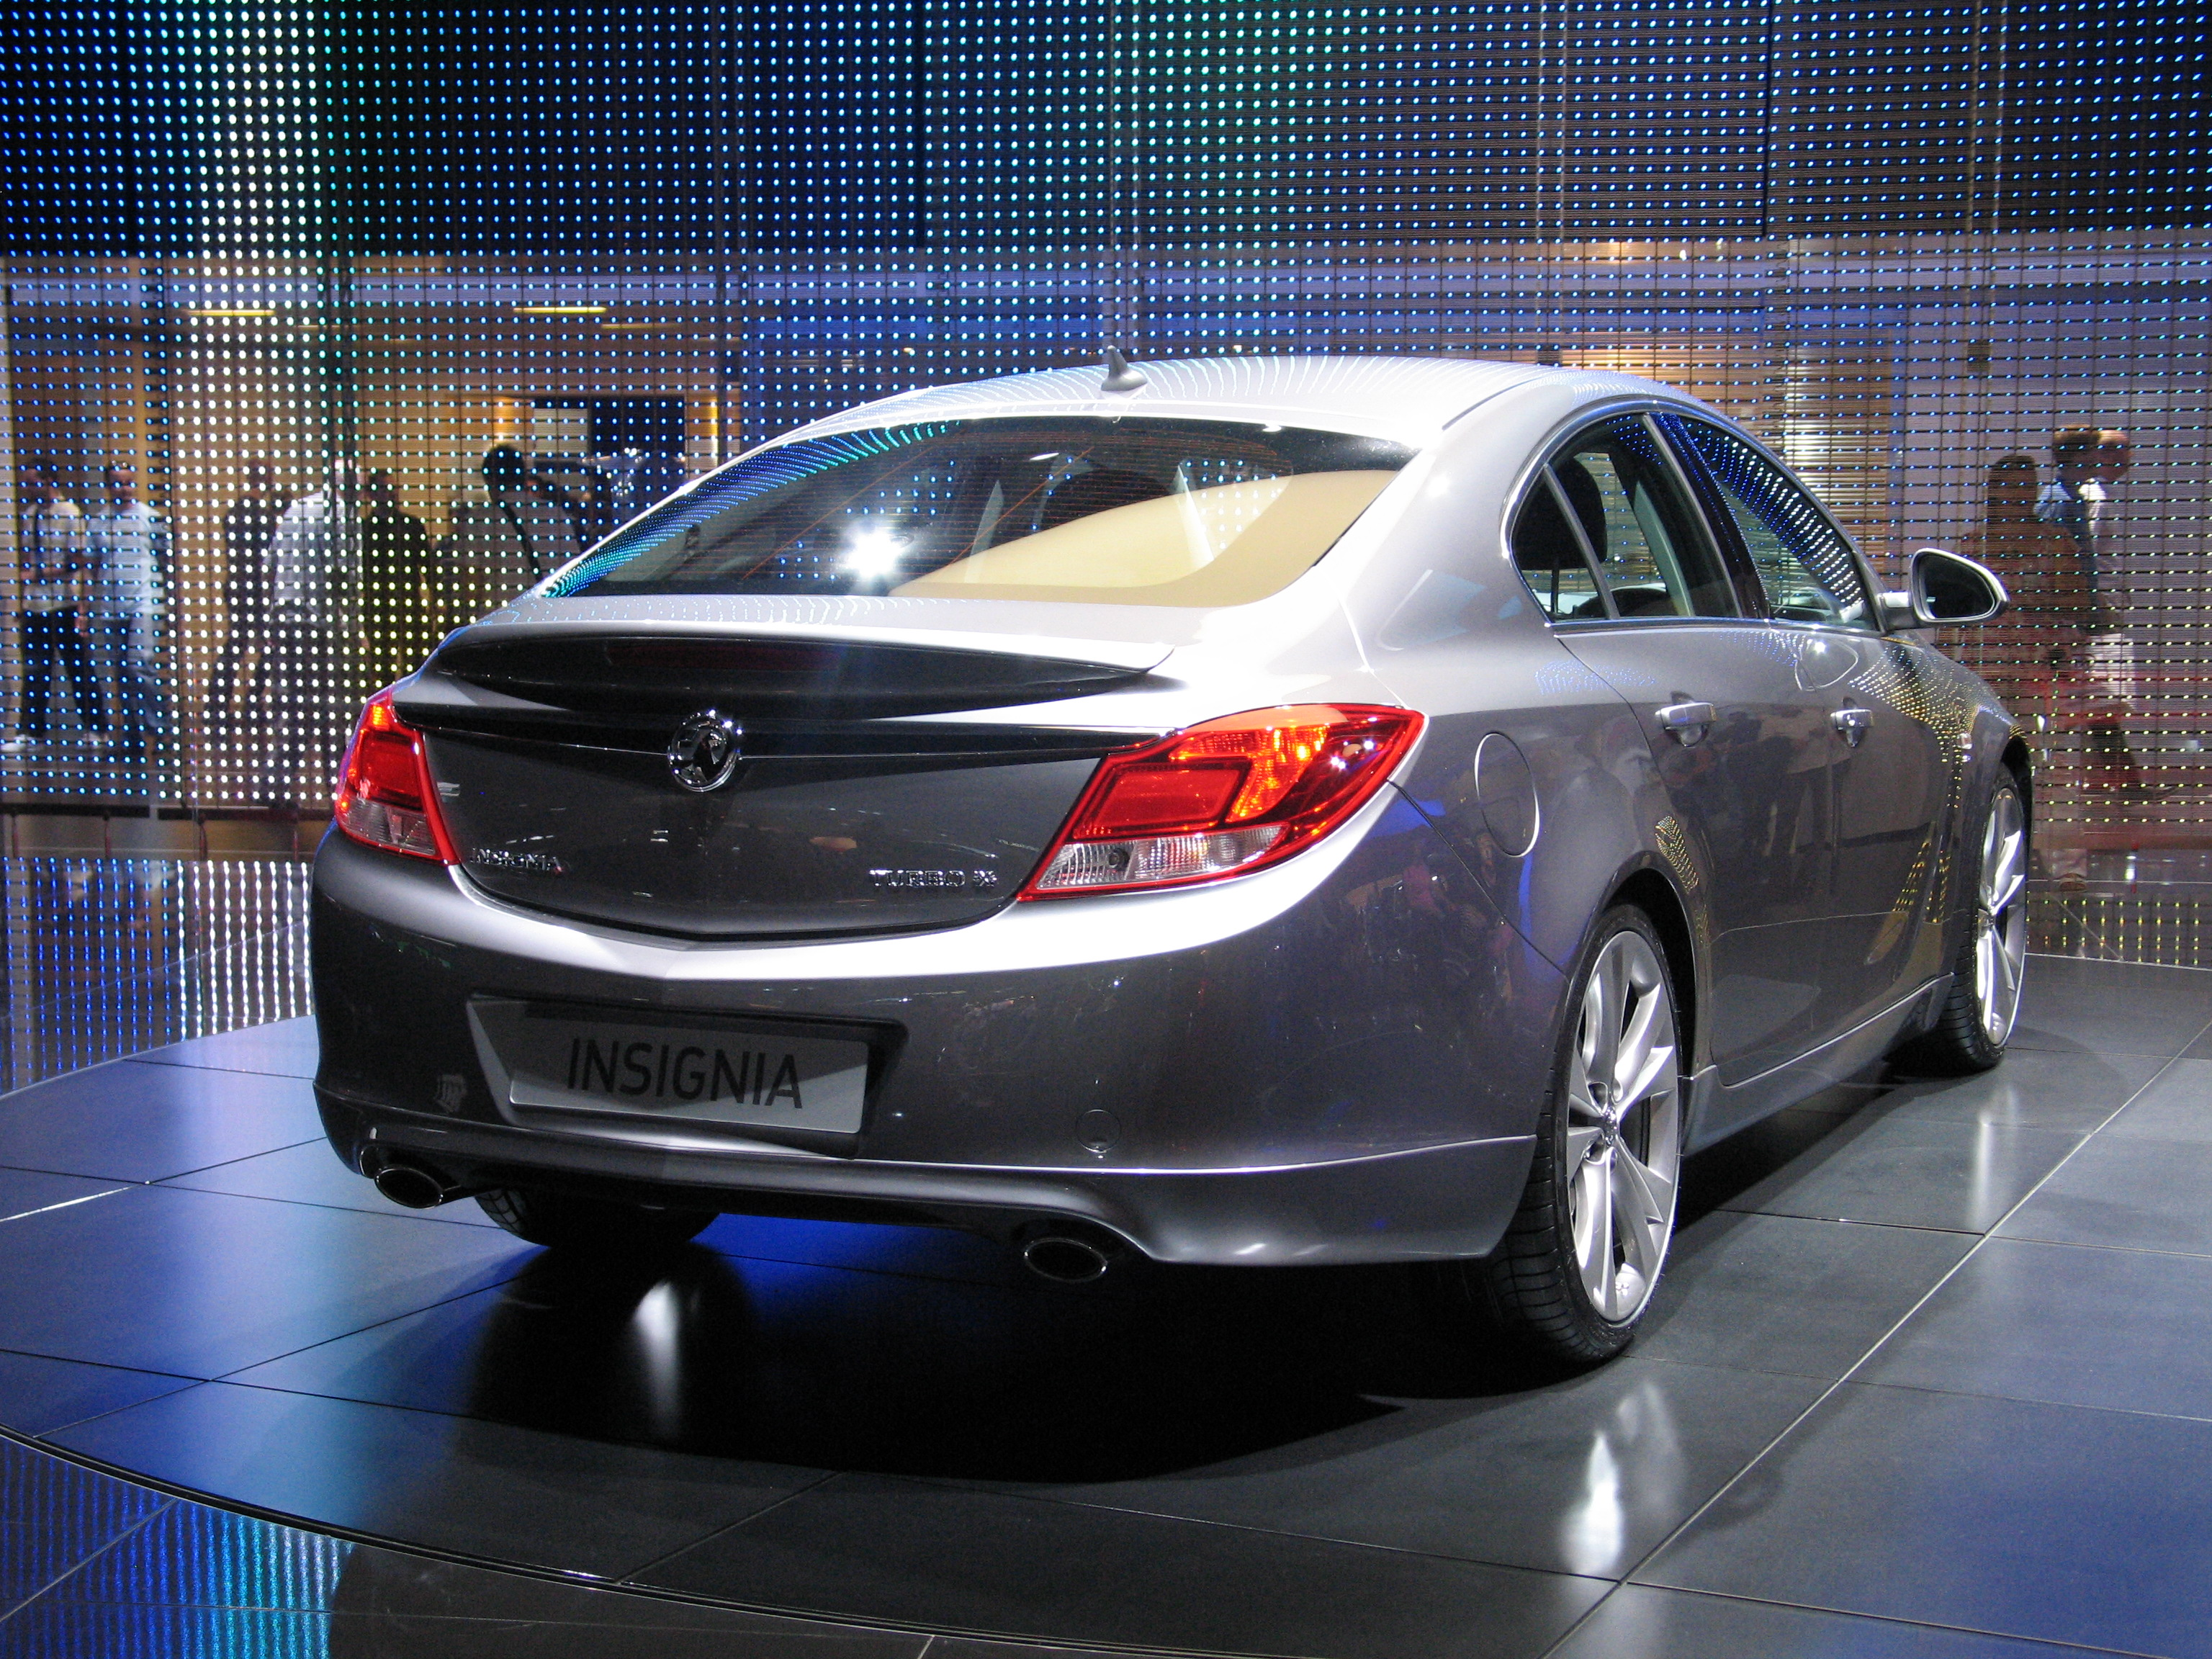 file opel vauxhall insignia wikimedia commons. Black Bedroom Furniture Sets. Home Design Ideas